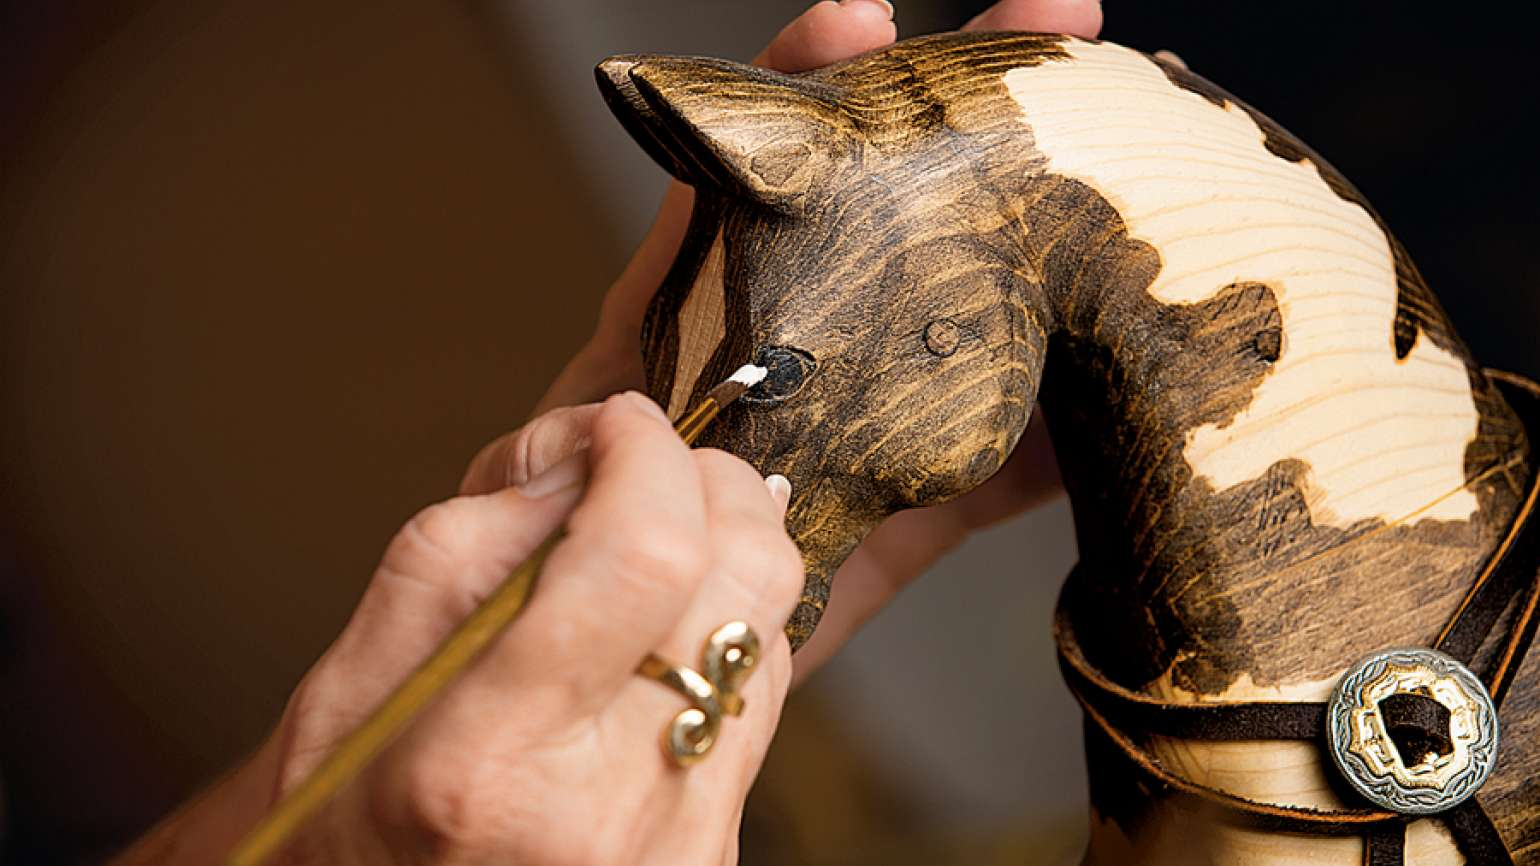 Jackie works meticulously in her studio on one of her equine creations.